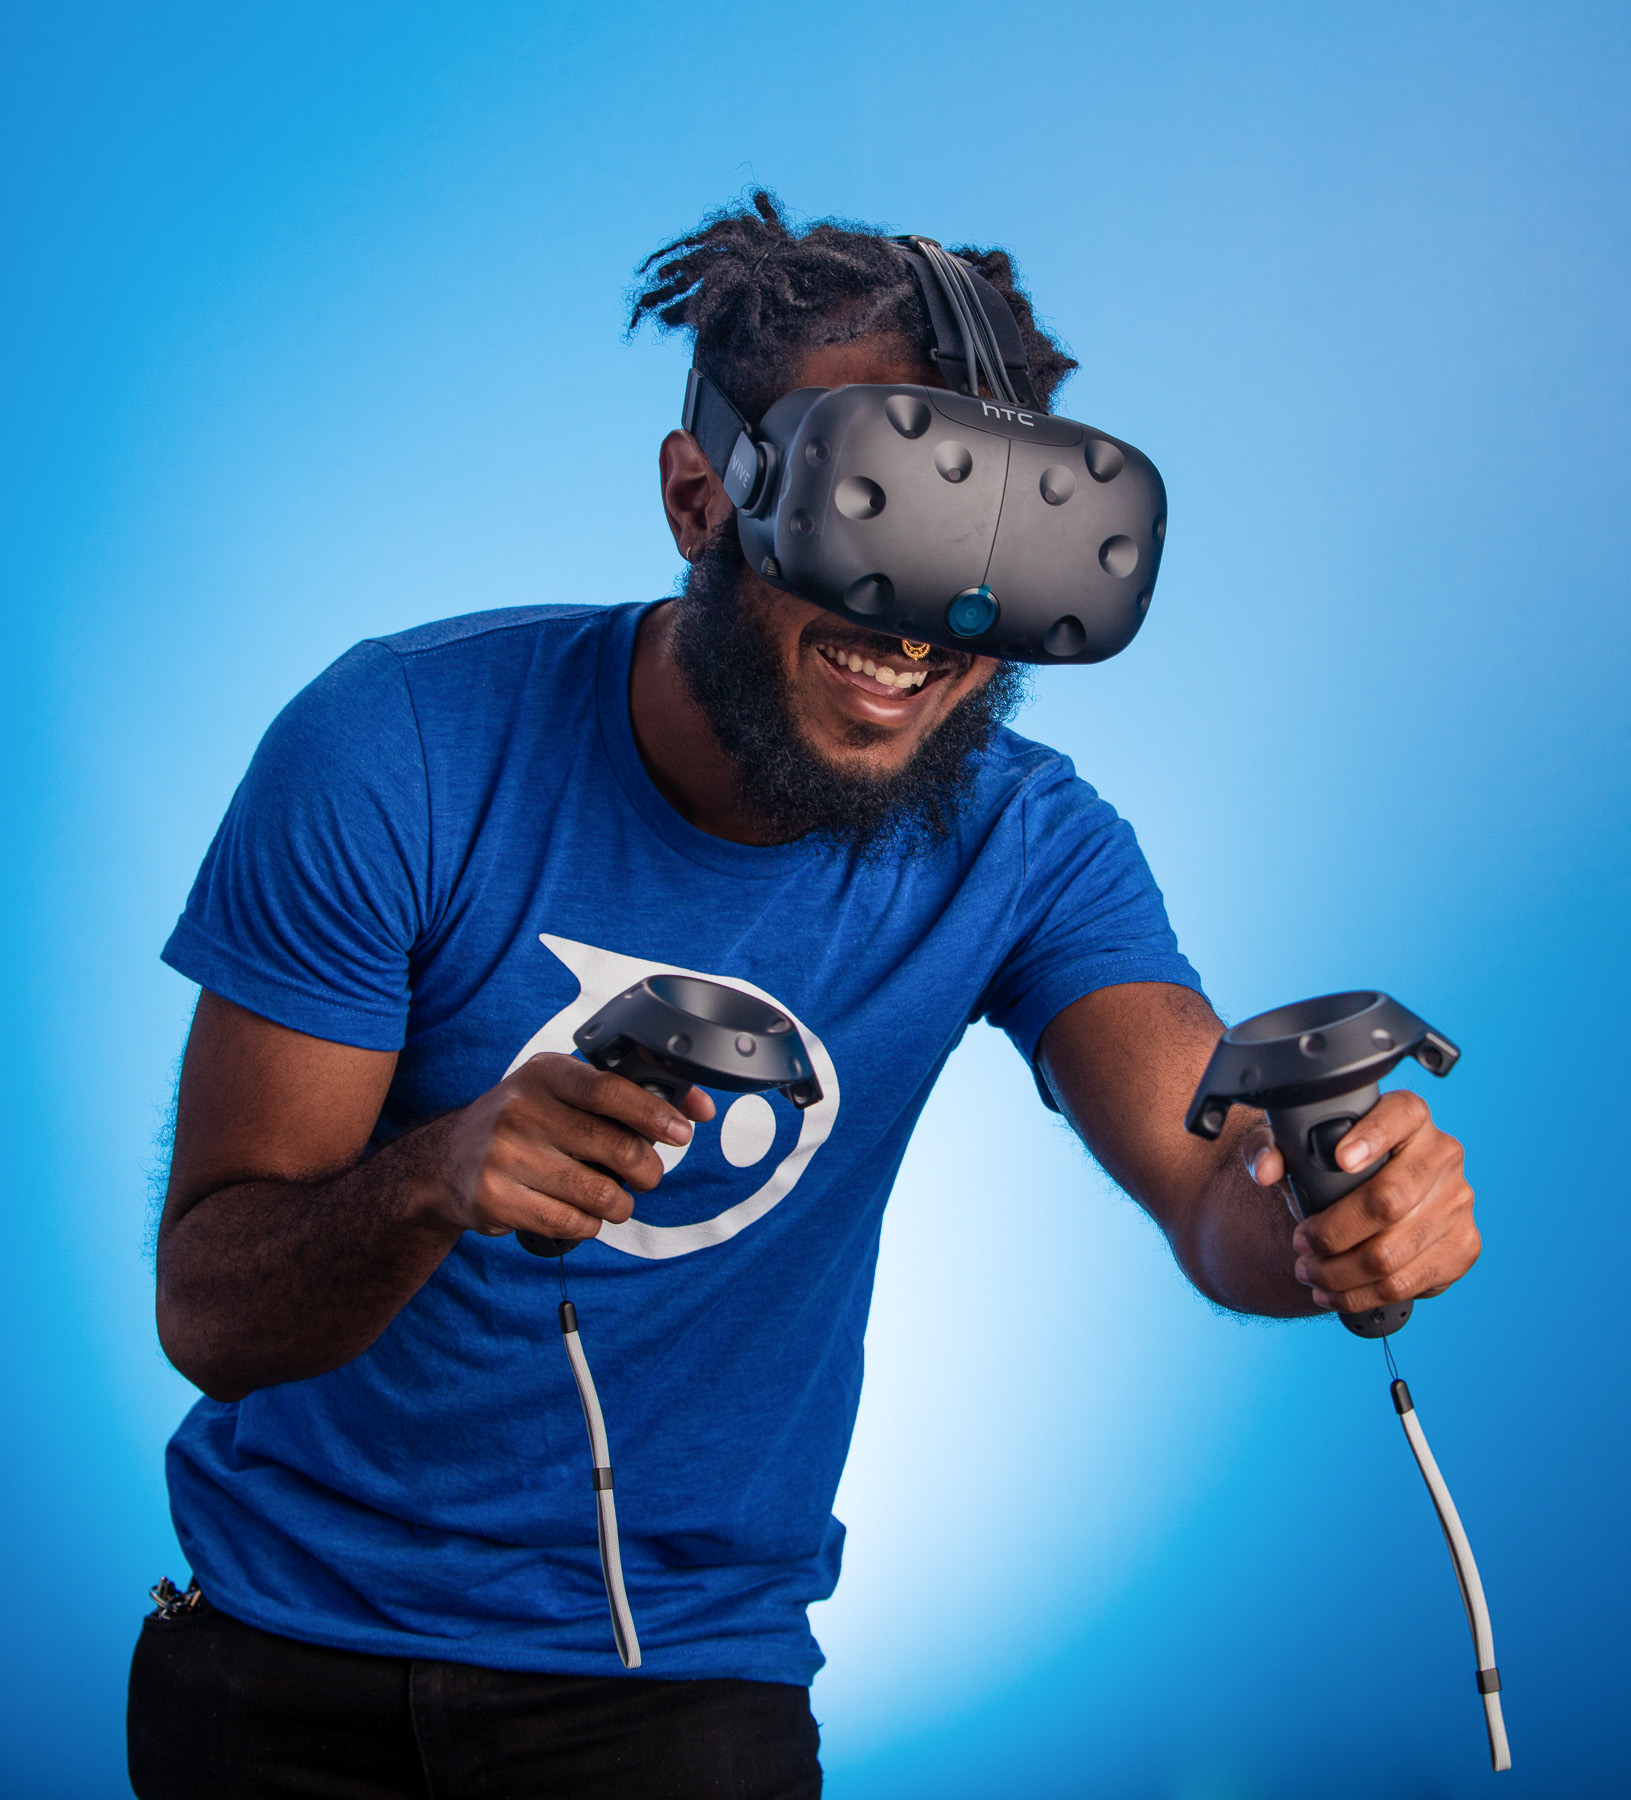 Studio portrait of man playing on Oculus Rift in Boulder, Colorado.